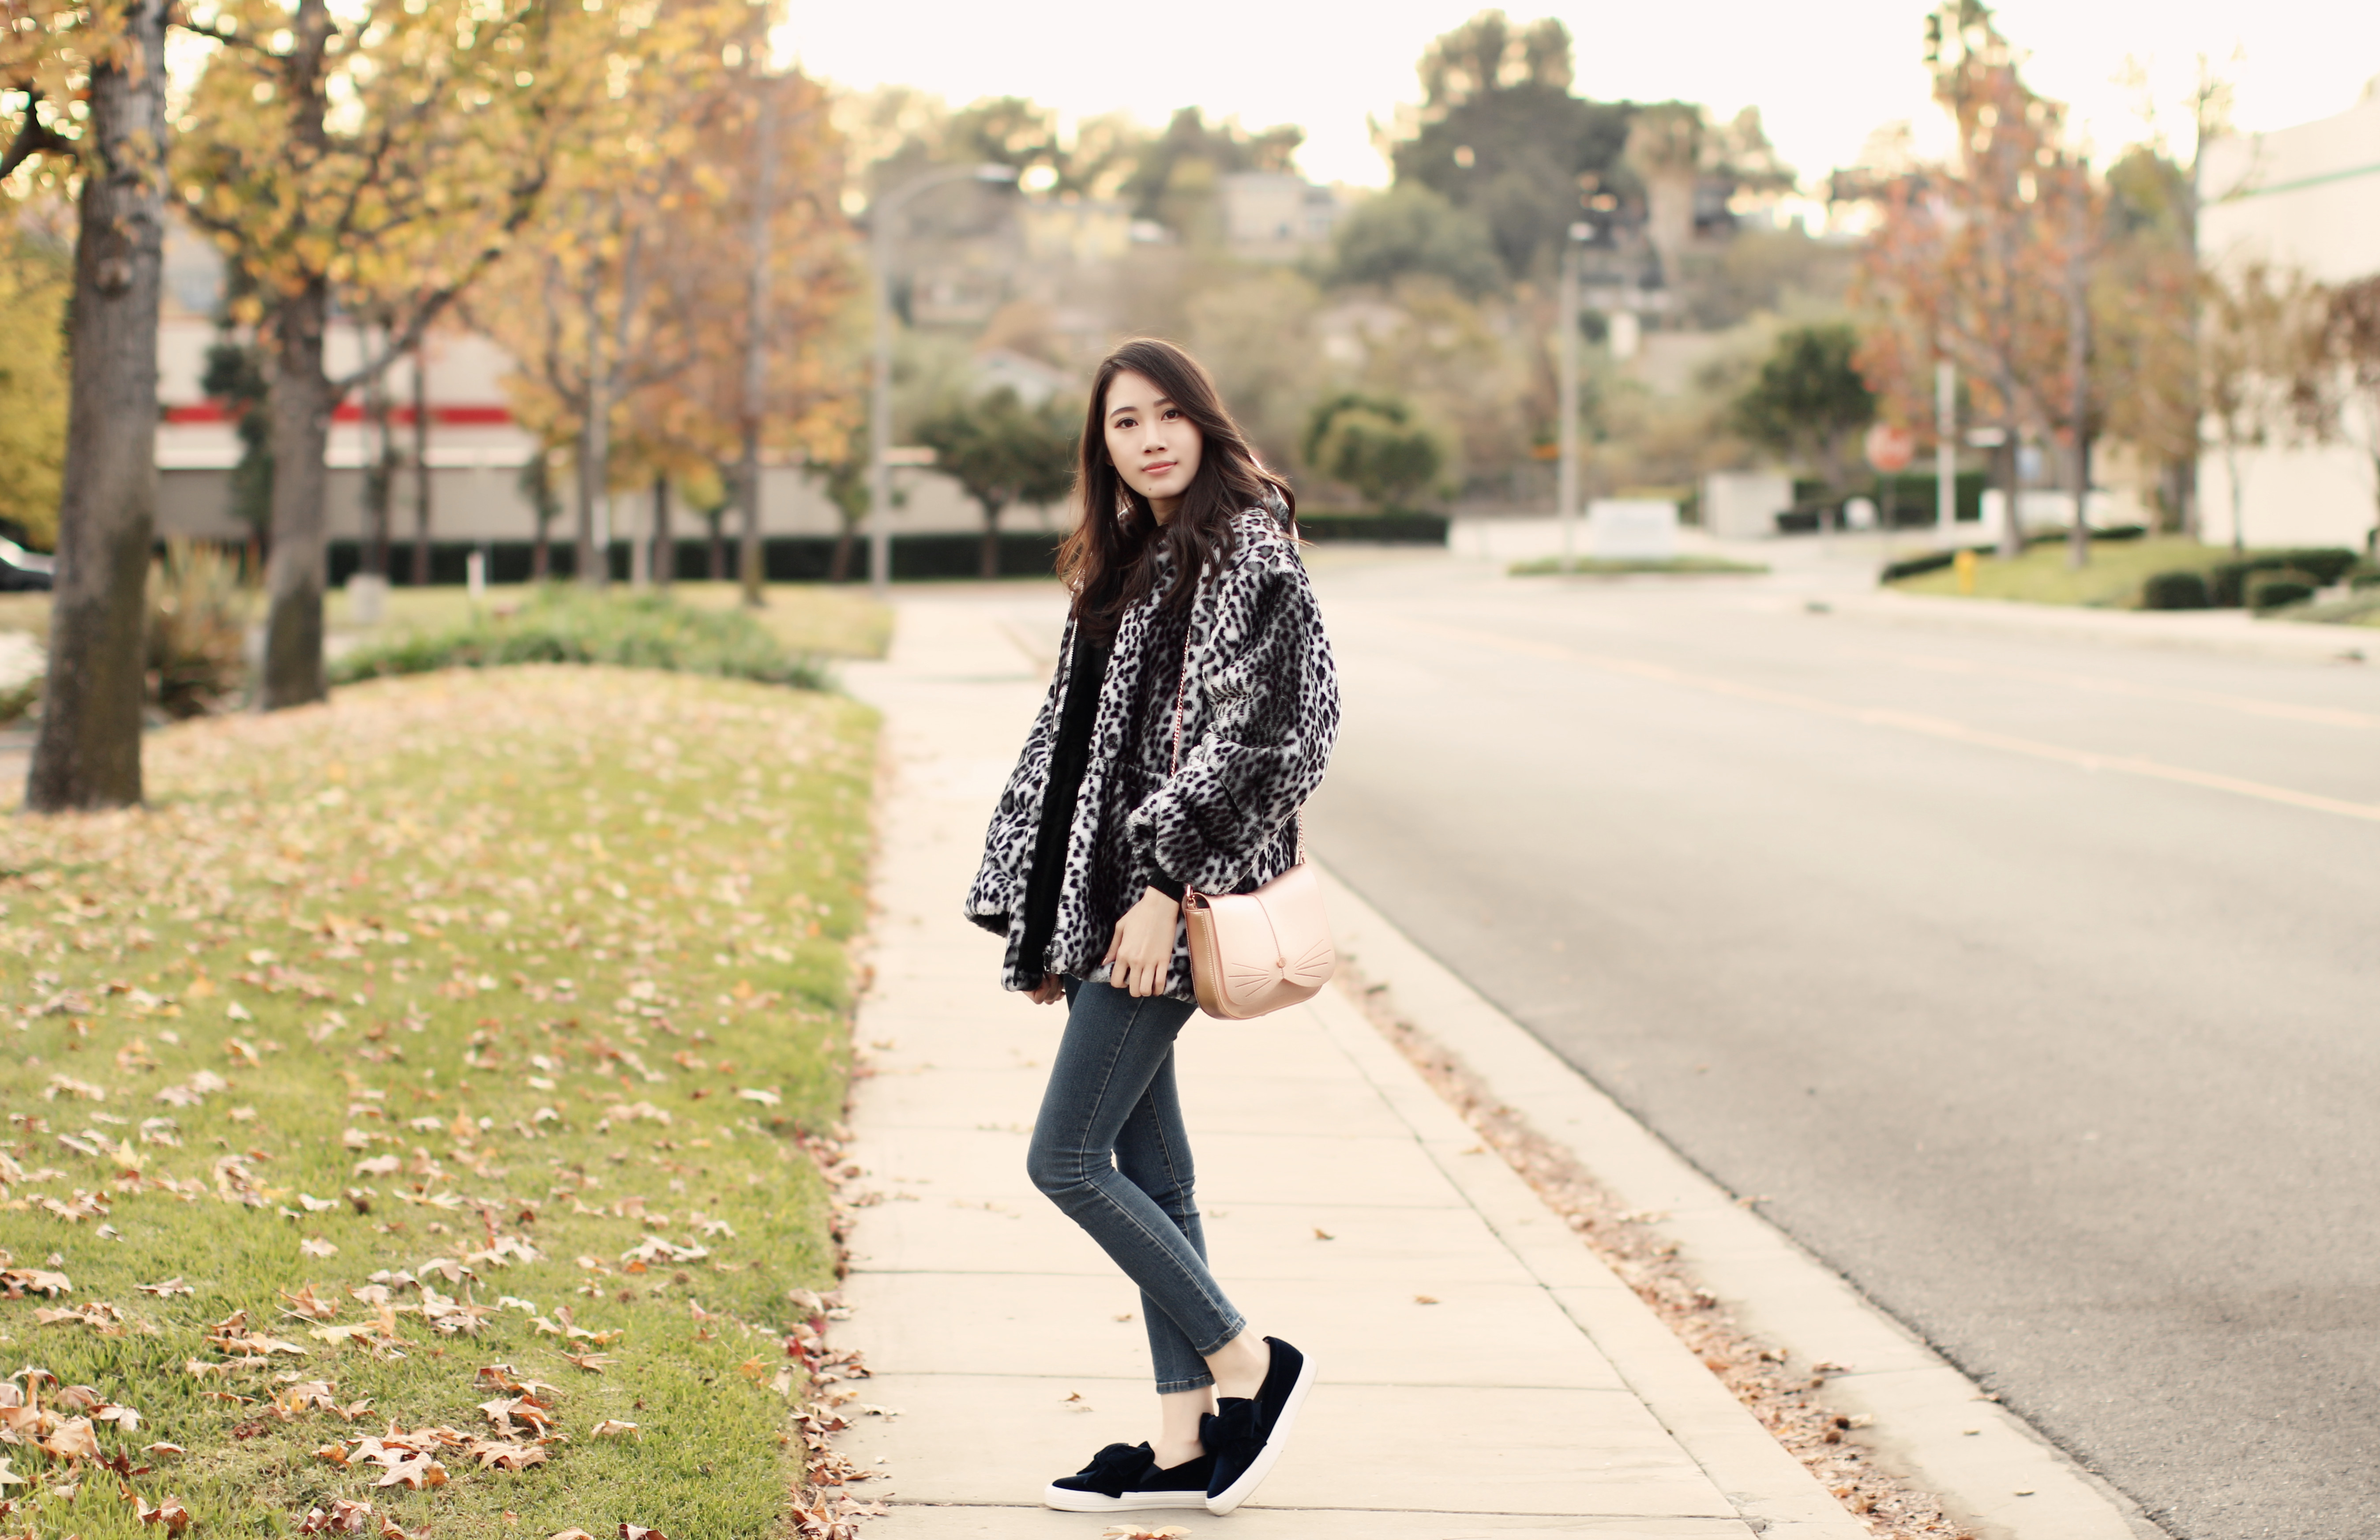 4049-ootd-fashion-style-outfitoftheday-wiwt-streetstyle-furcoat-fauxfur-forever21-f21xme-hollister-hcostylescene-elizabeeetht-clothestoyouuu